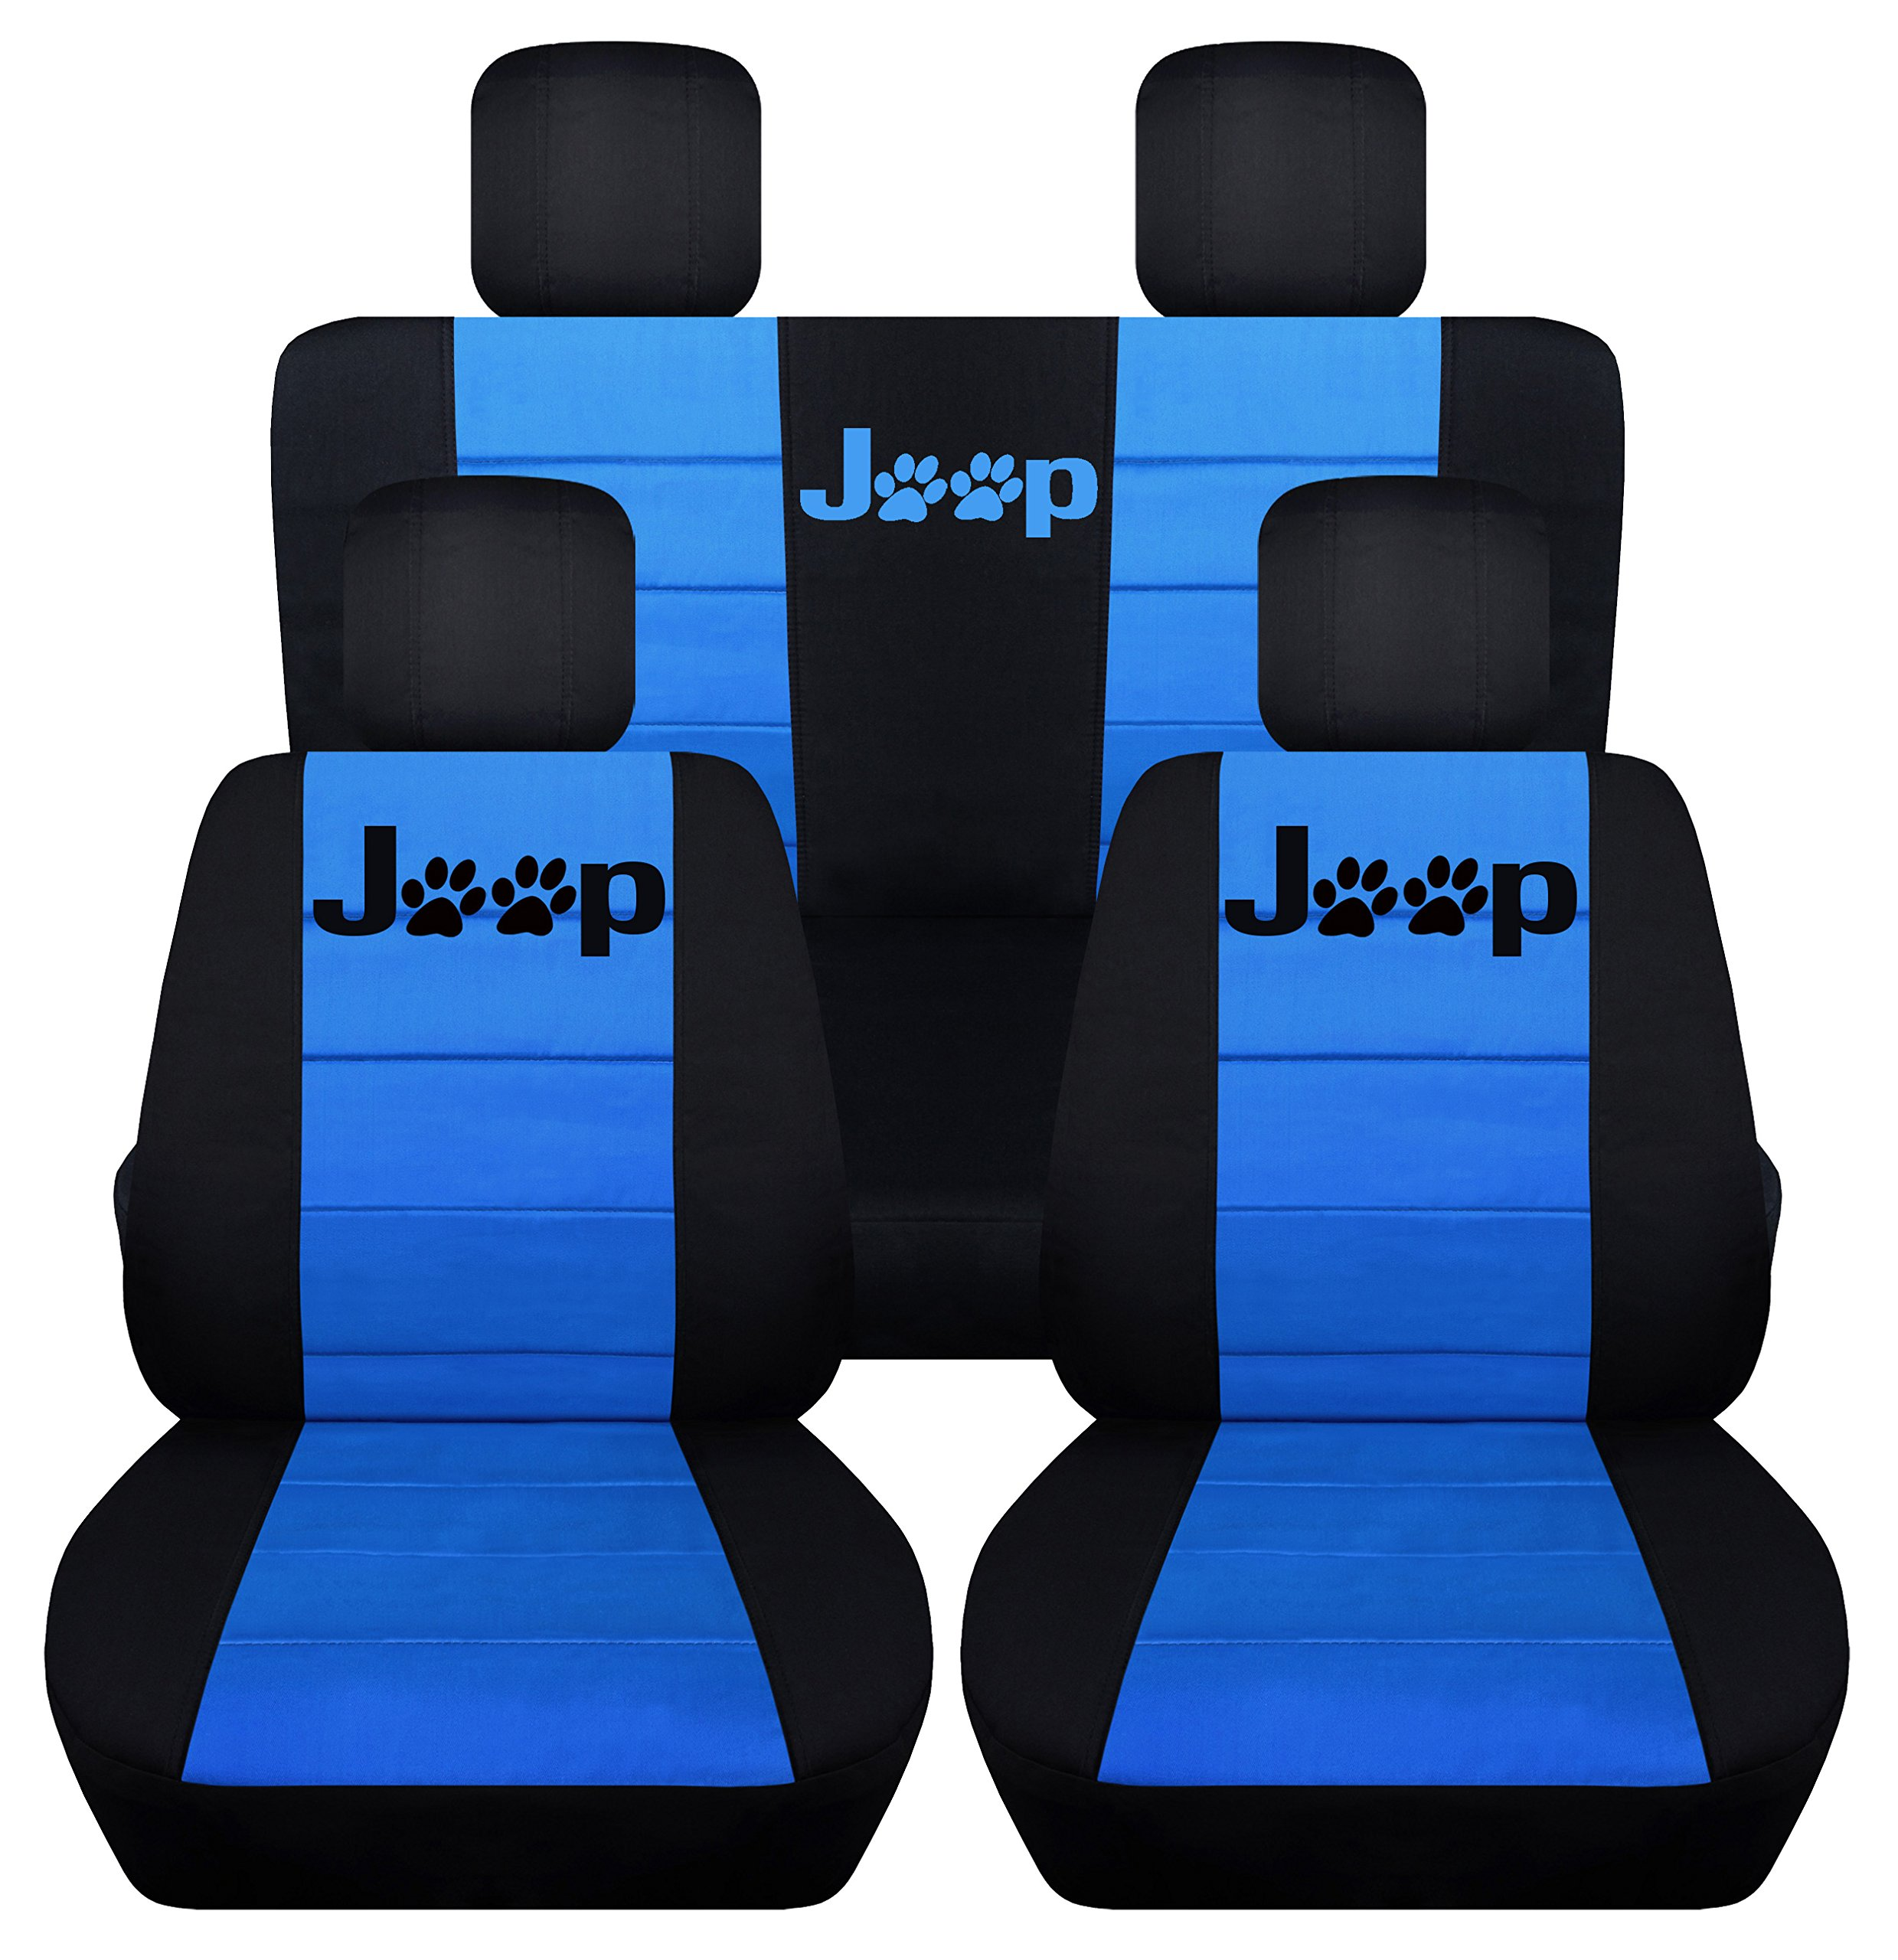 Designcovers Fits 2013 to 2017 Jeep Wrangler 4 Door Paw Print Seat Covers 21 Color Options (Black and Light Blue)